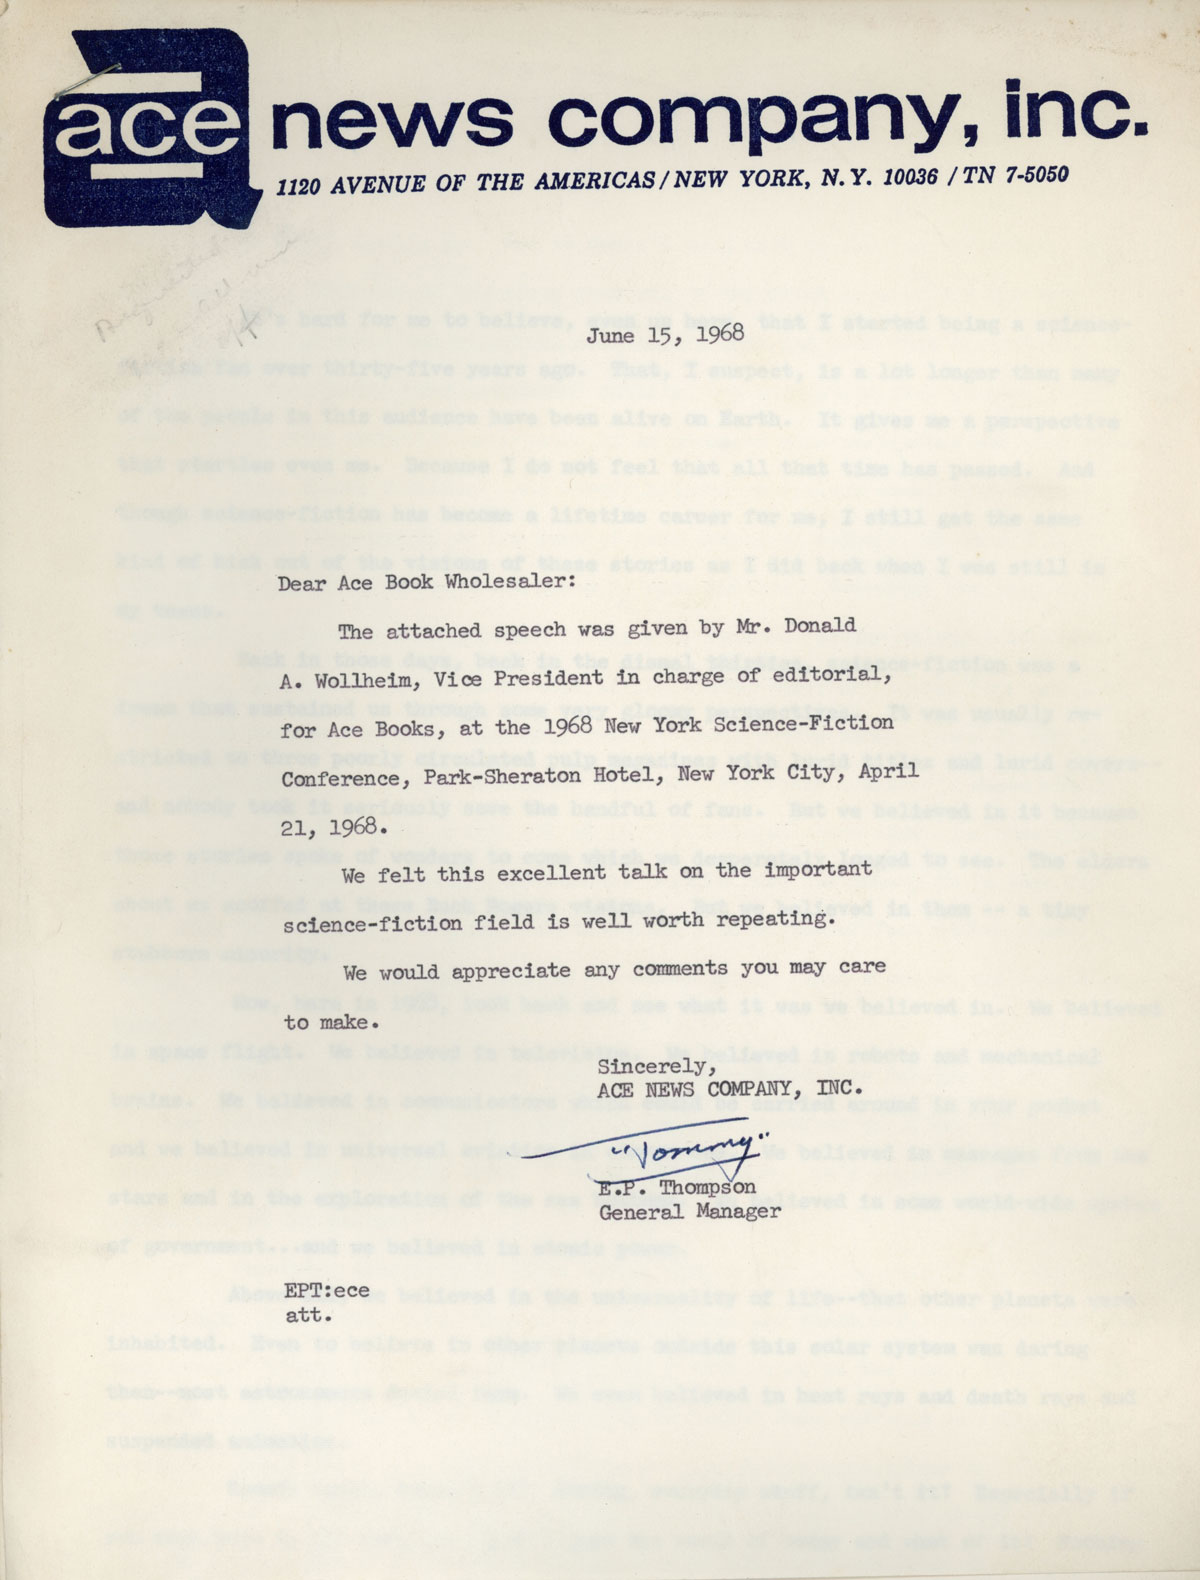 SPEECH TO THE 1968 NEW YORK SCIENCE FICTION CONFERENCE